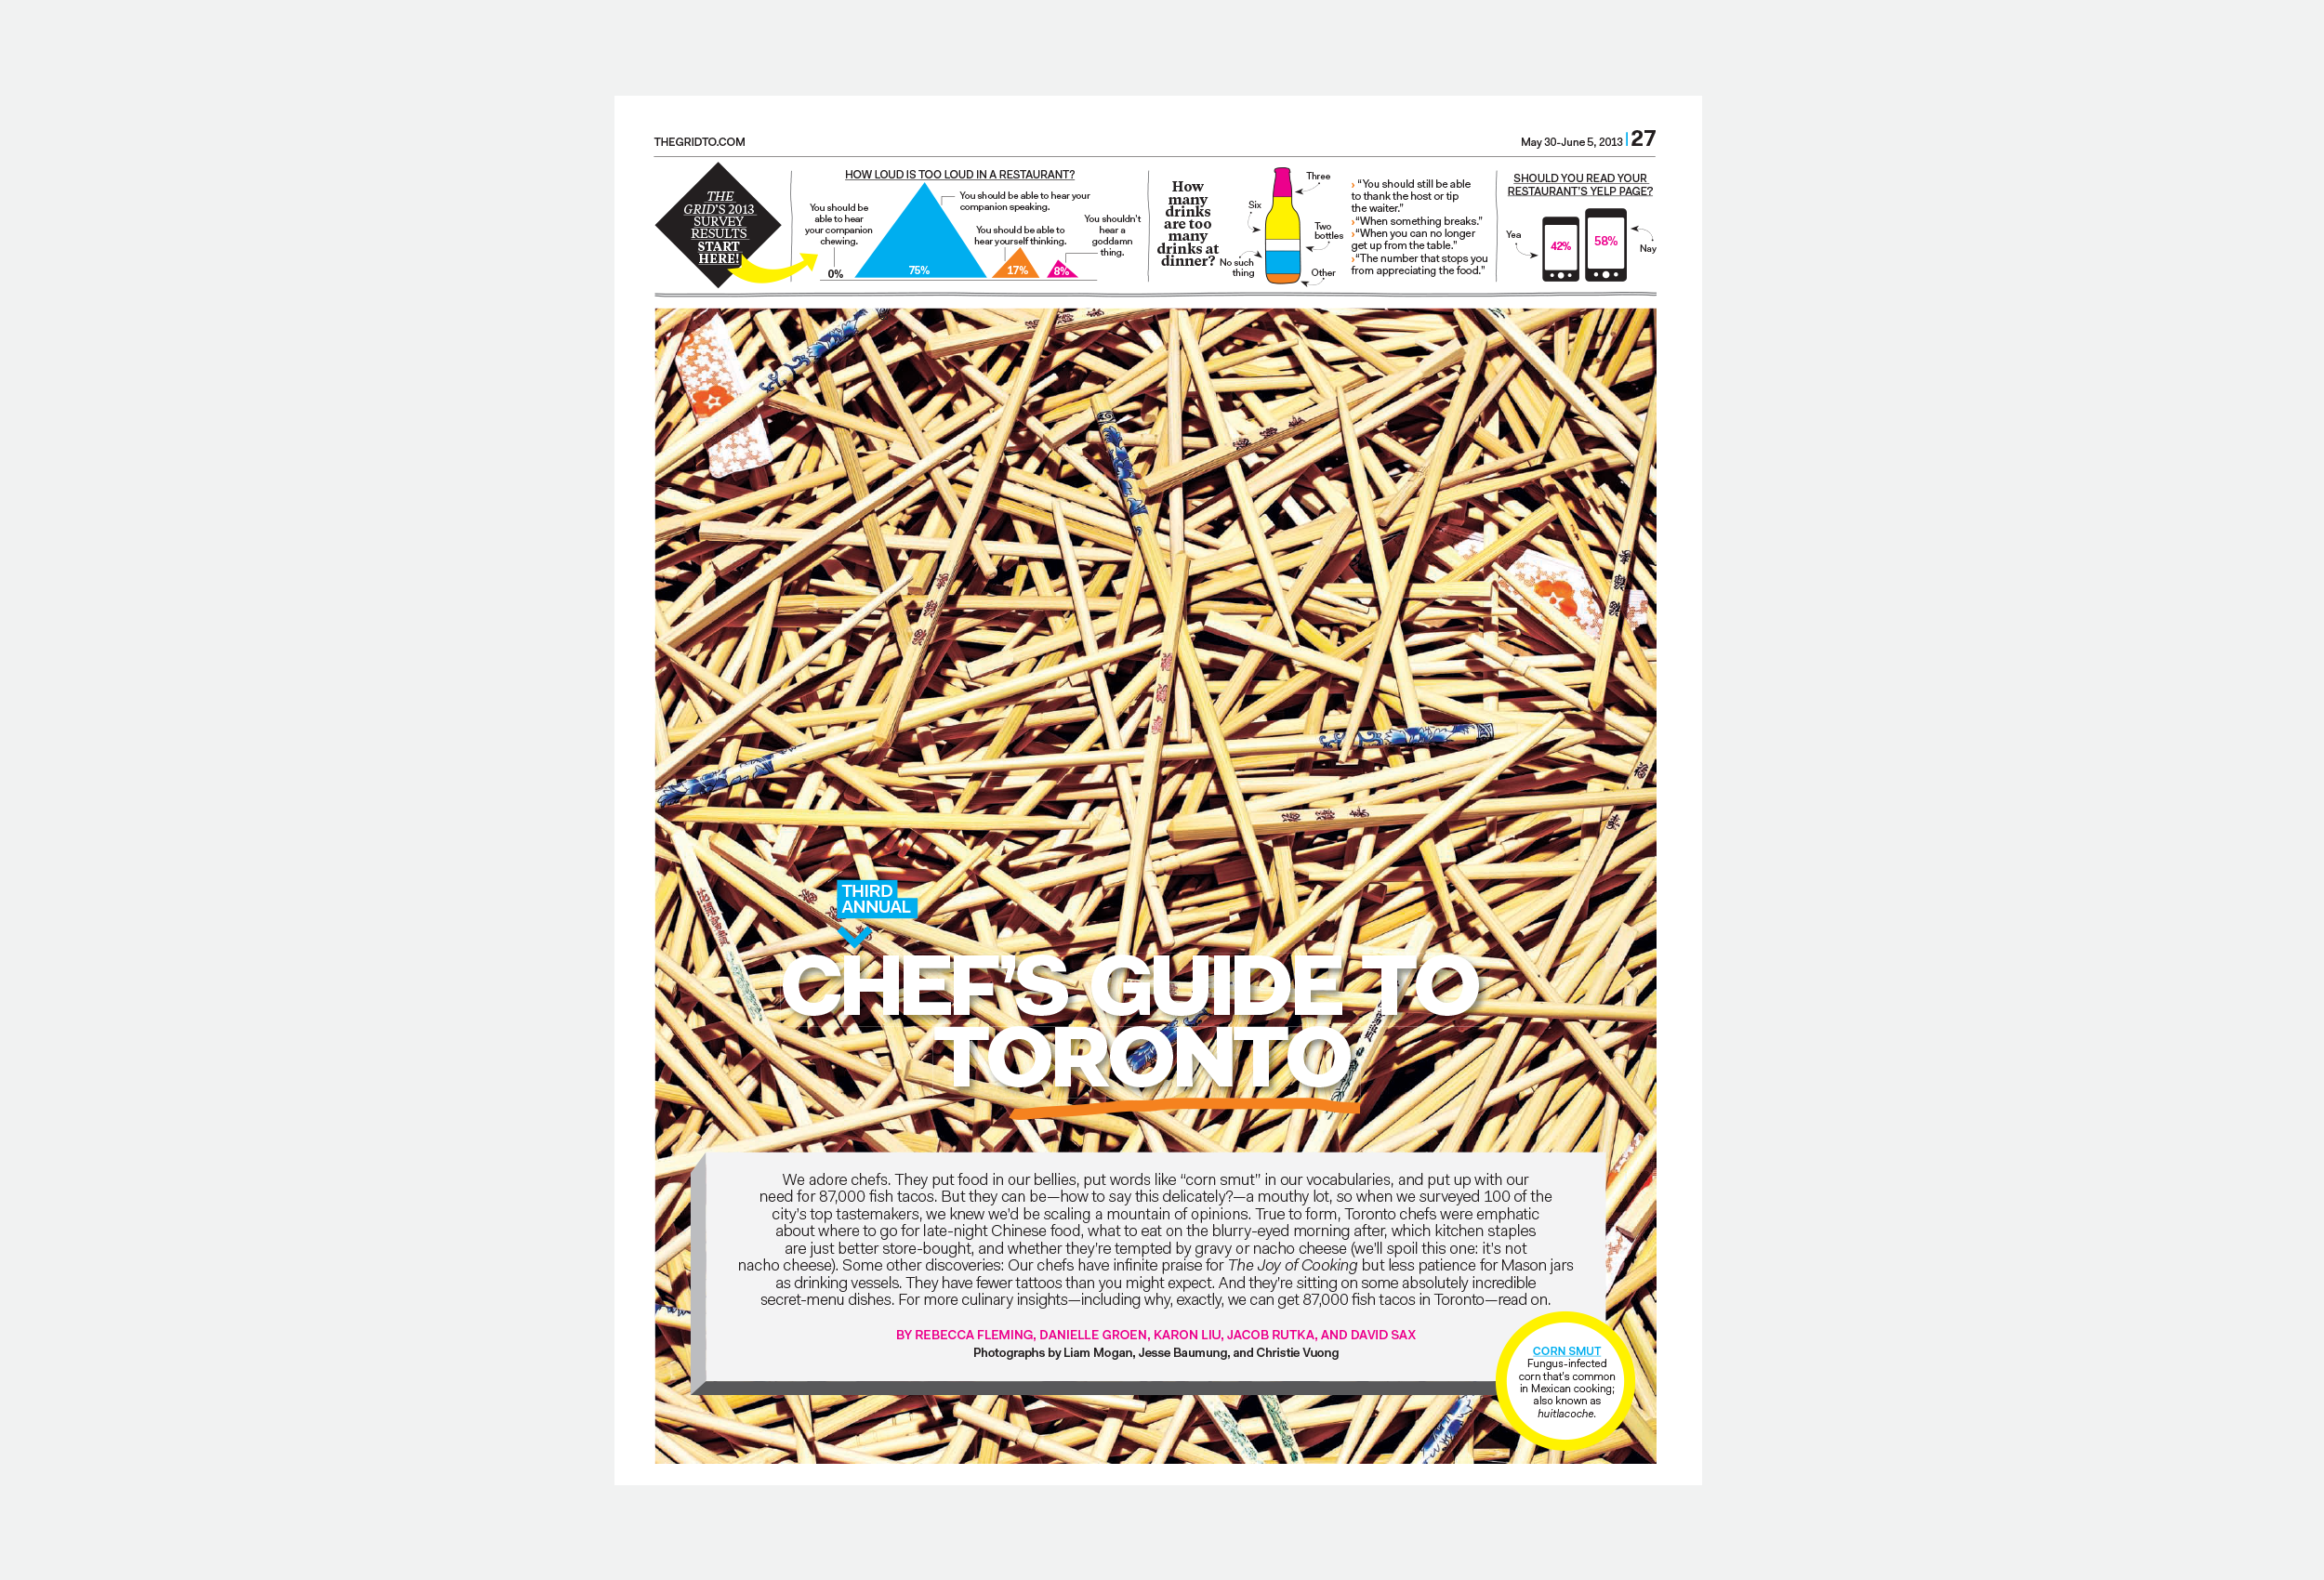 TheGrid_ChefsGuide_2013_1.png